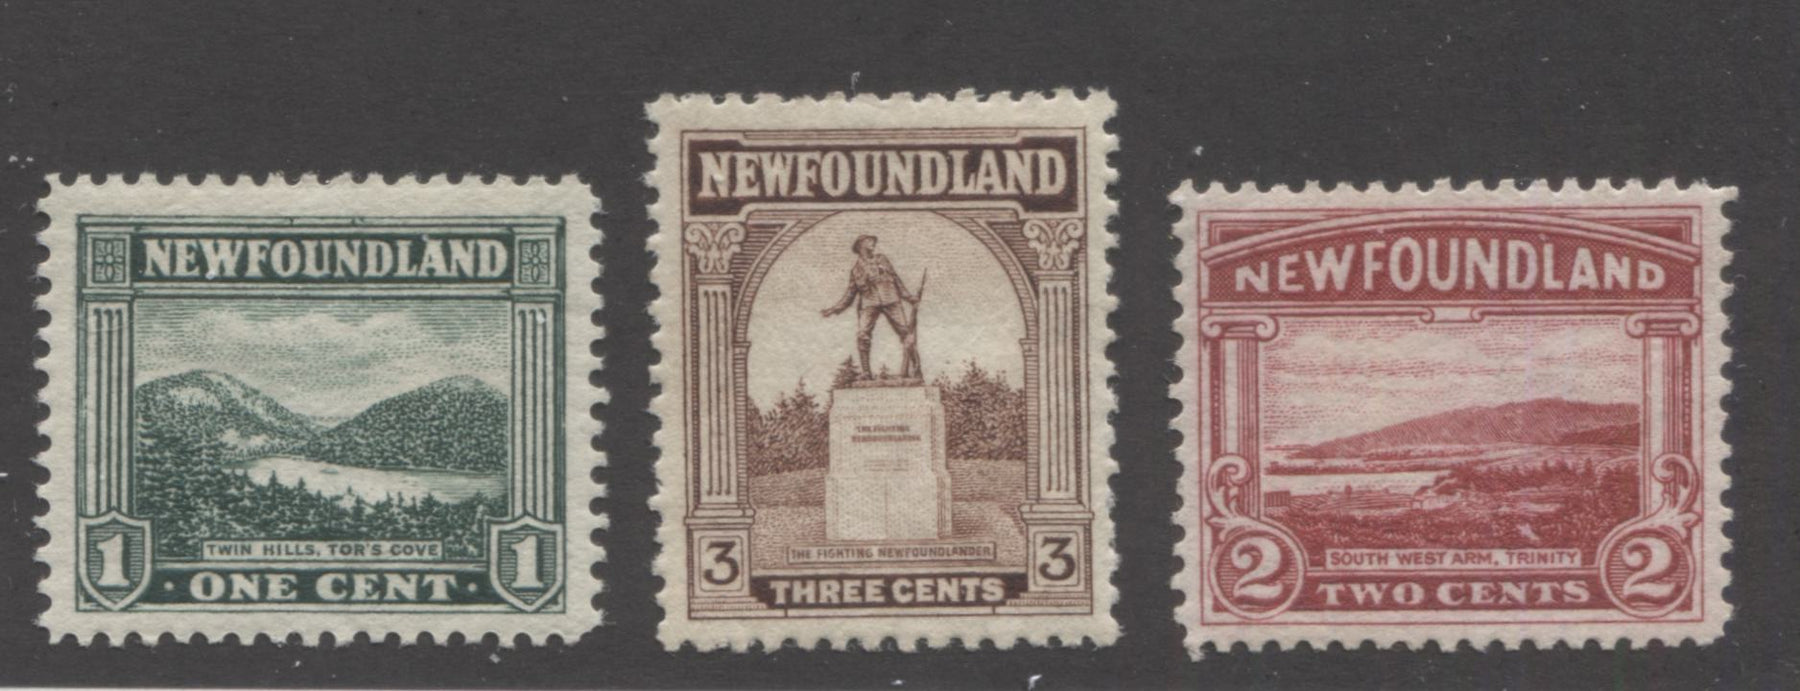 Newfoundland #131-133 1c Green - 3c Reddish Brown Twin Hills - War Memorial, 1923-1928 Pictorial Issue, Very Fine Mint OG Examples, Line Perf. 14.2 and Comb Perf. 13.8 x 14 Brixton Chrome